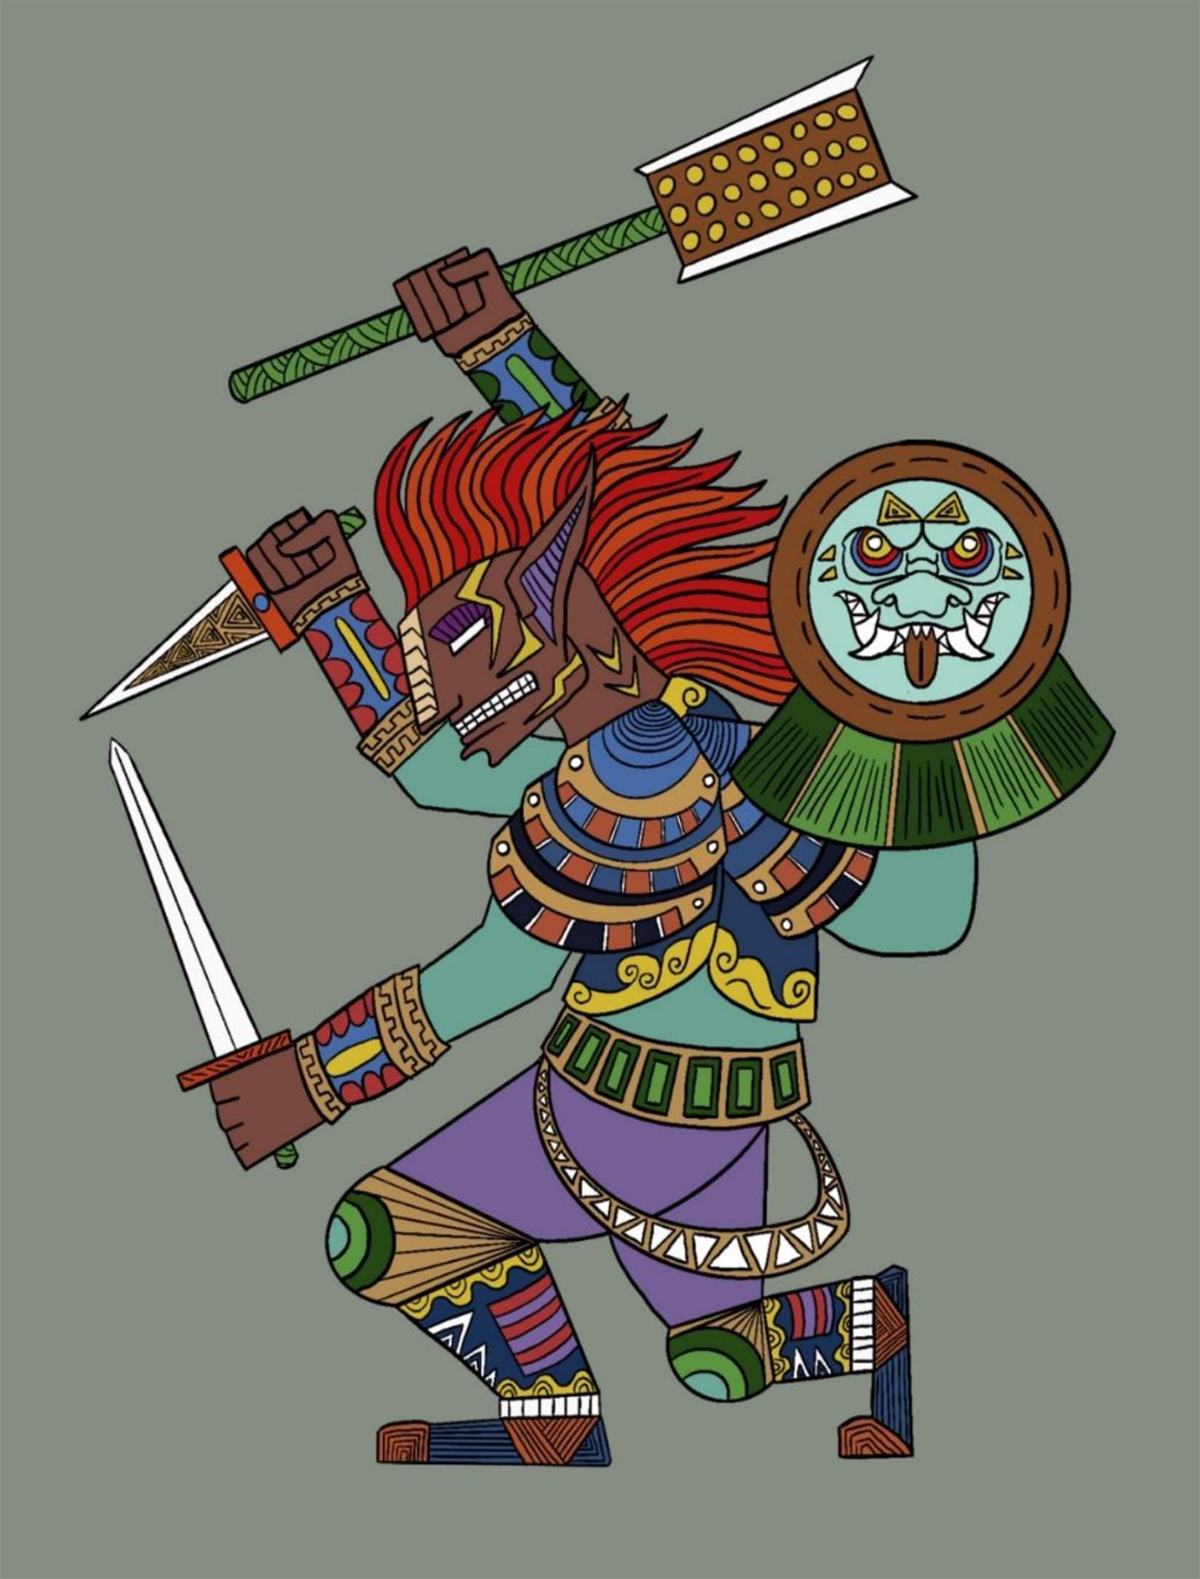 An illustration of a three-armed warrior wielding weapons.